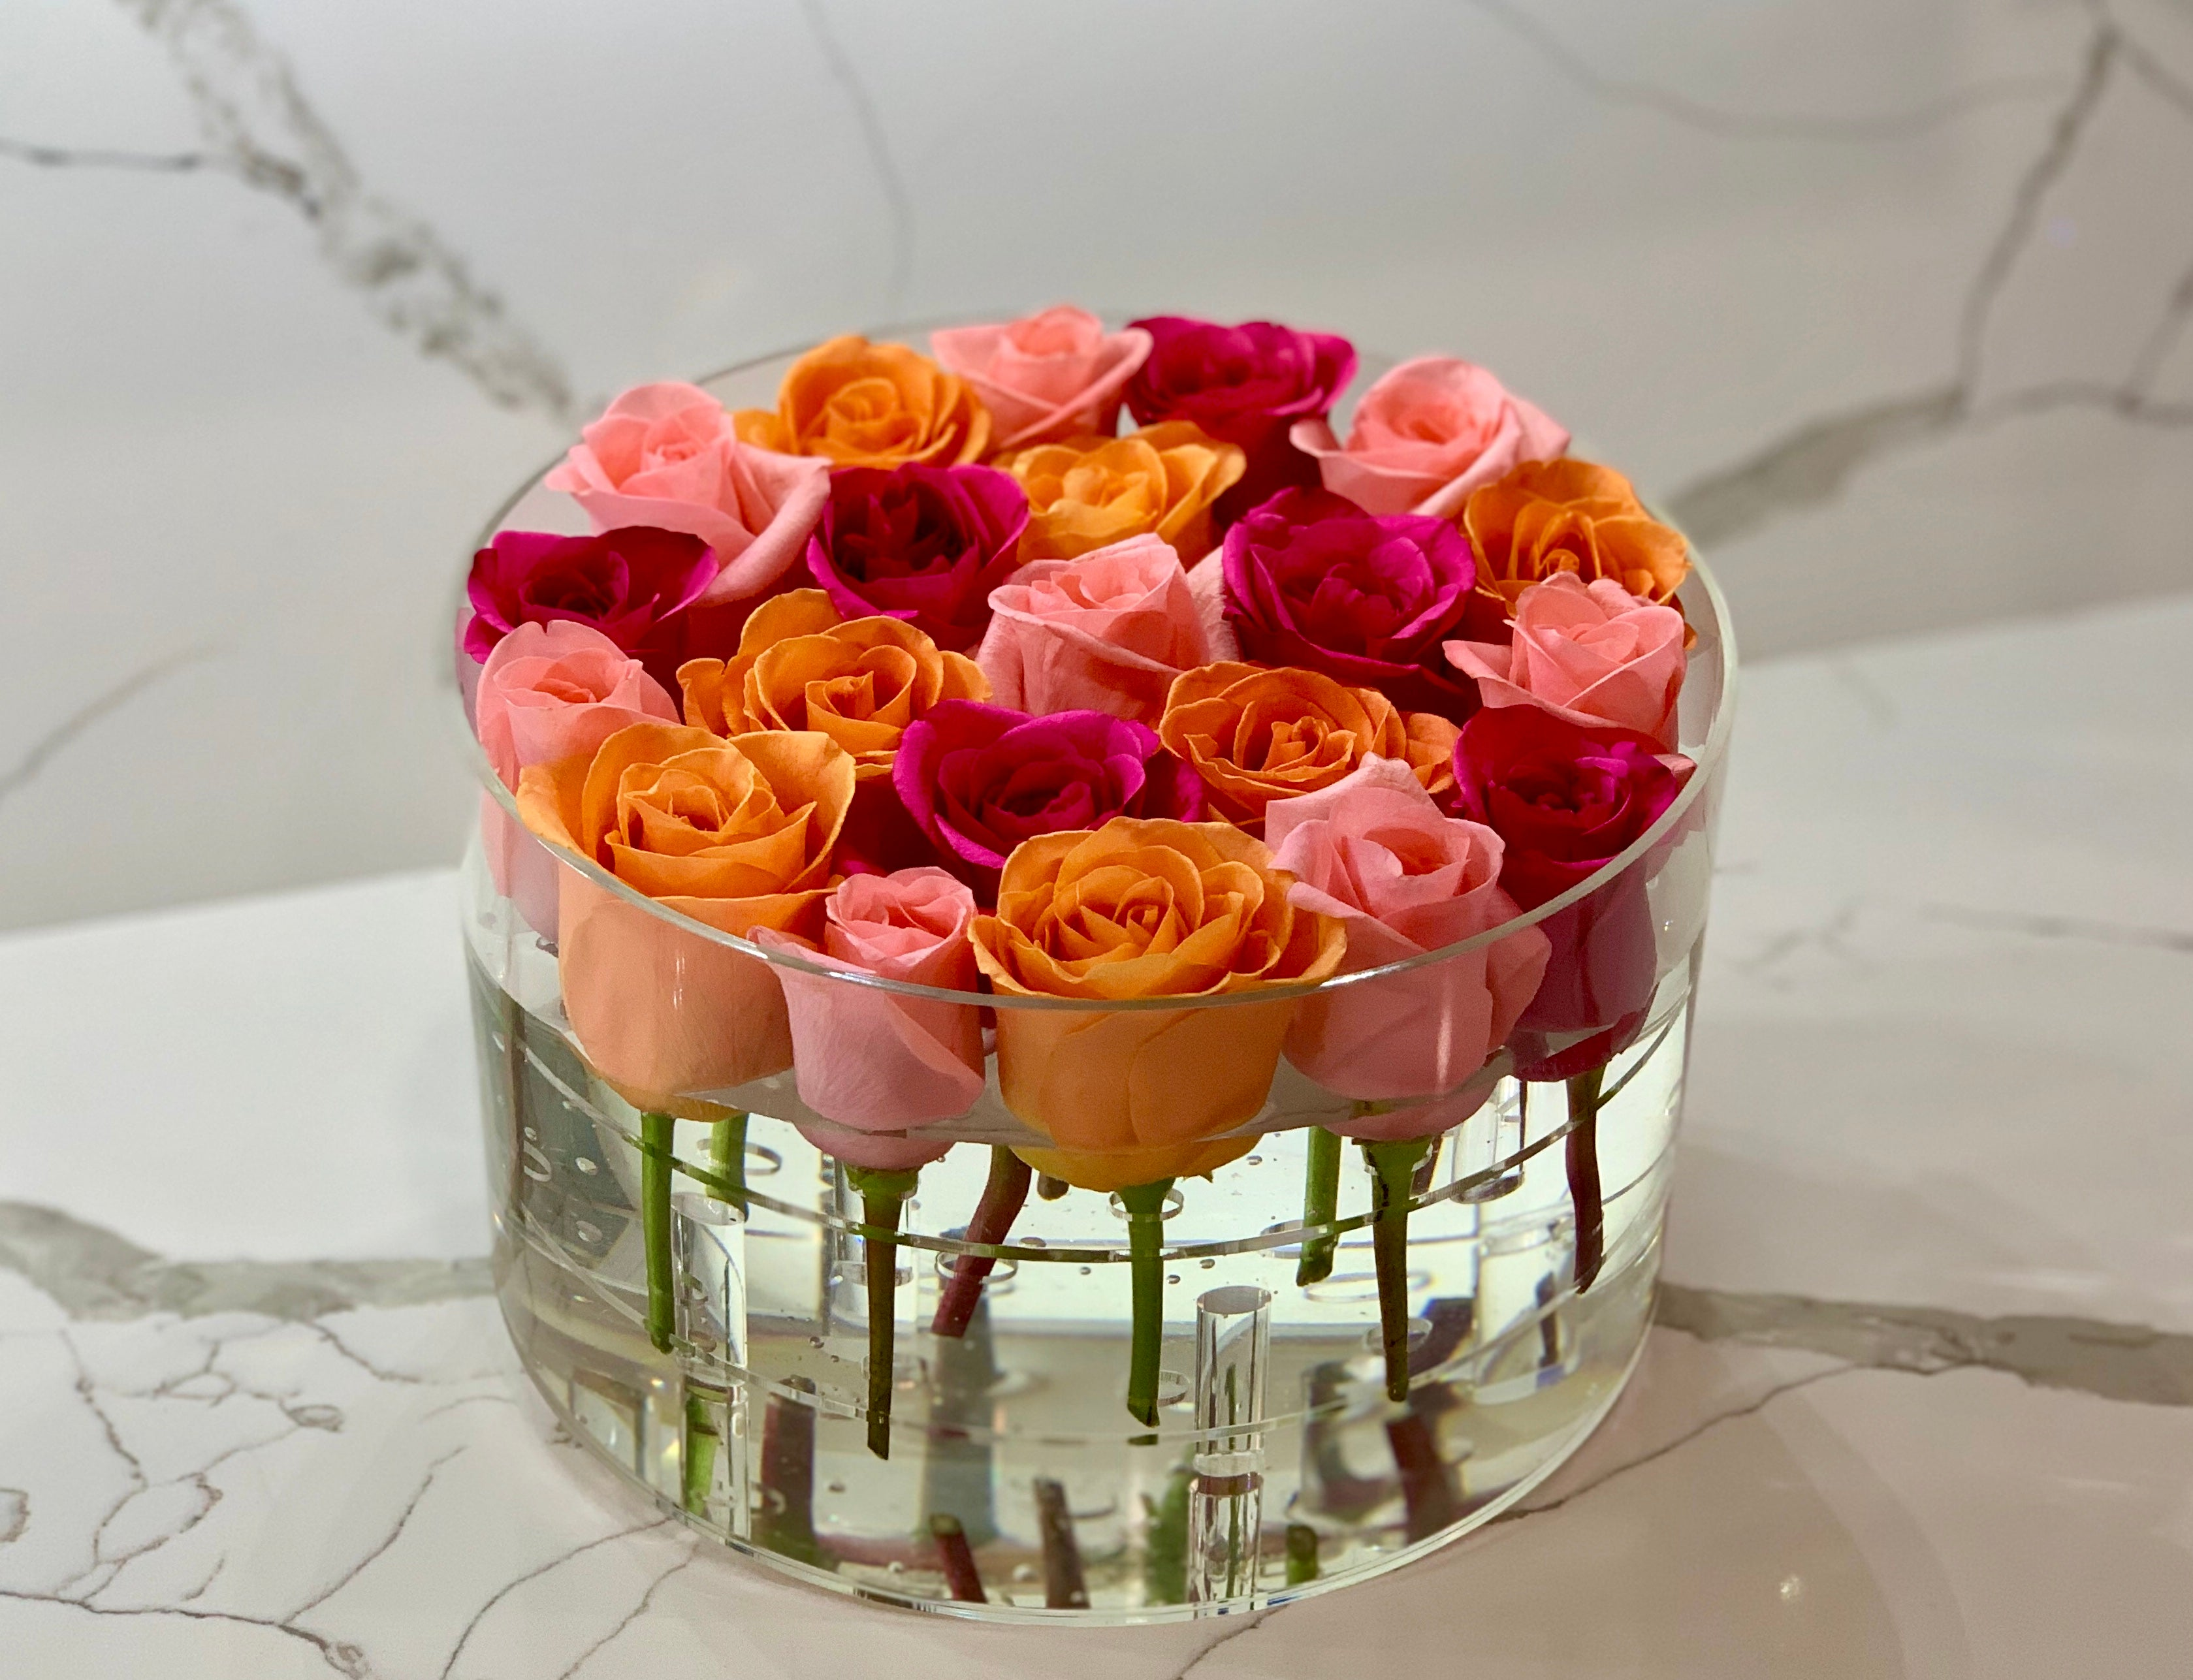 Modern Rose Box with Preserved long last lasting roses that last for years with hot pink roses, pink roses and orange roses